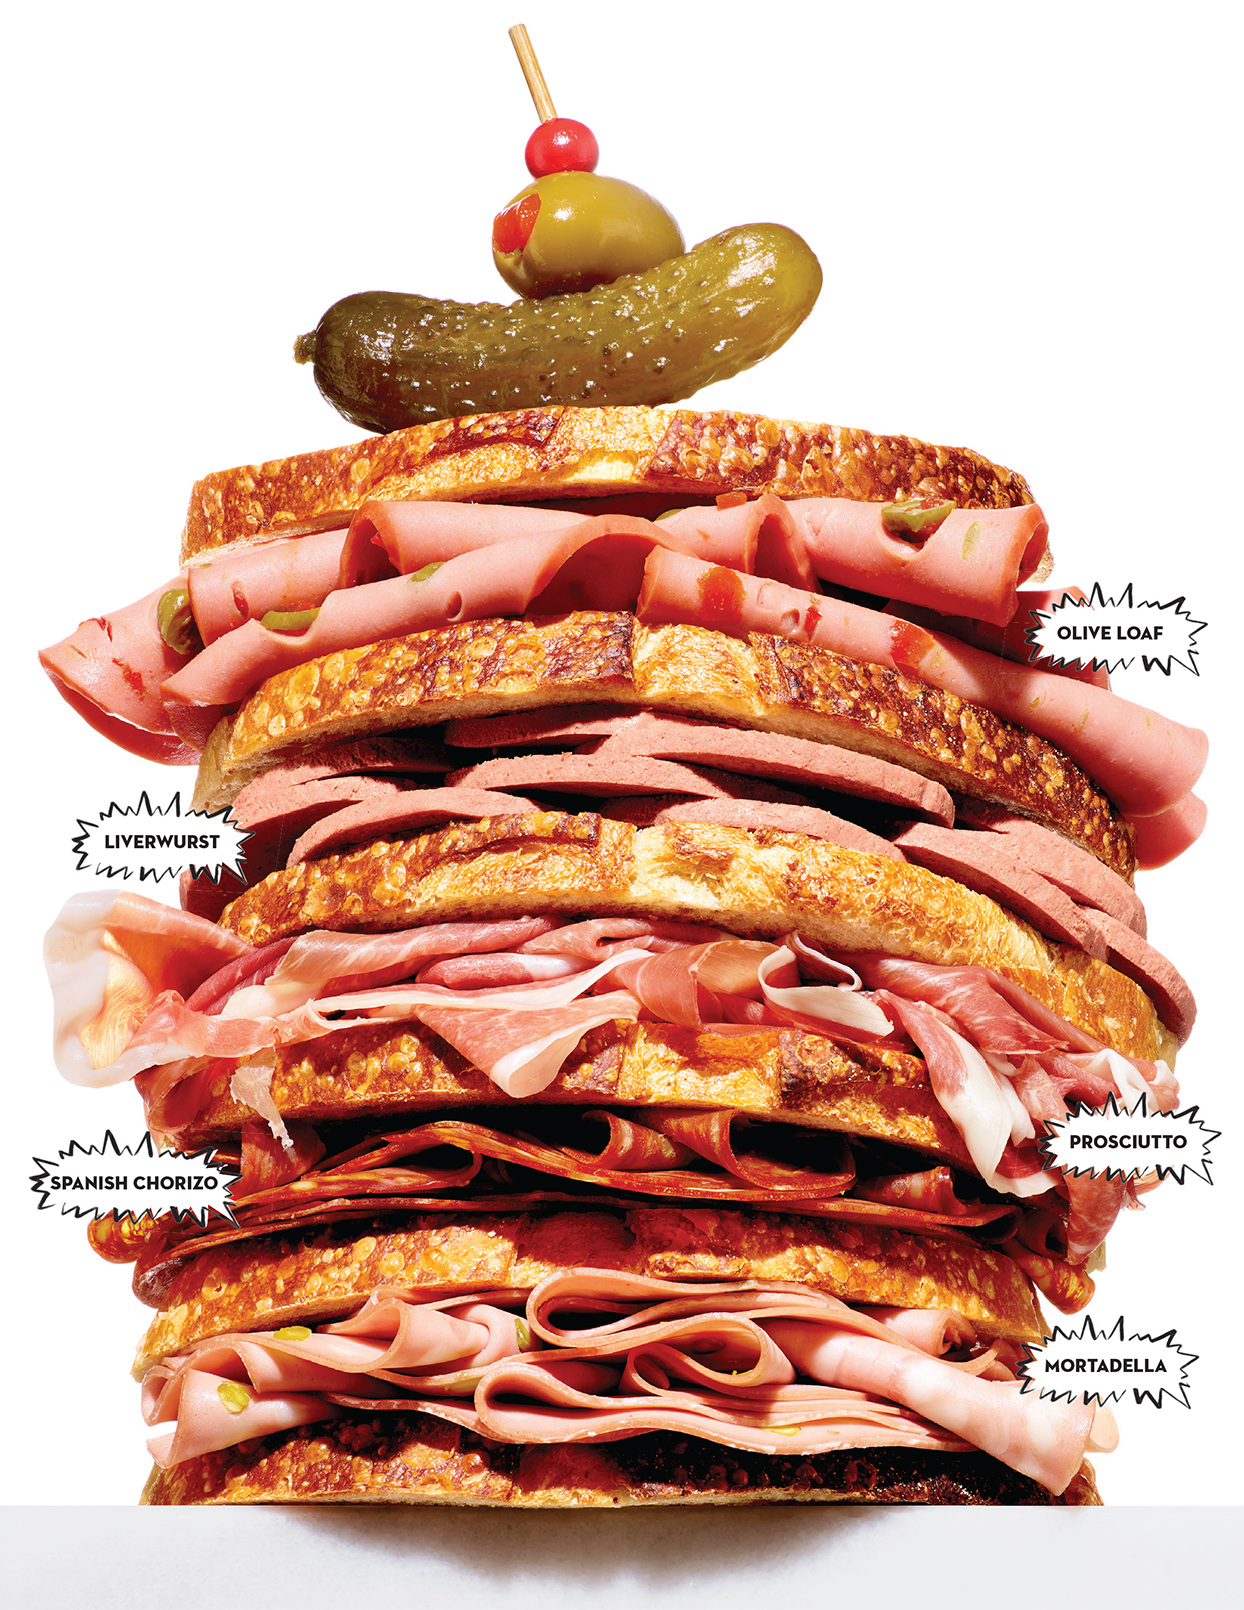 deli meat sandwich stacked high with meat names